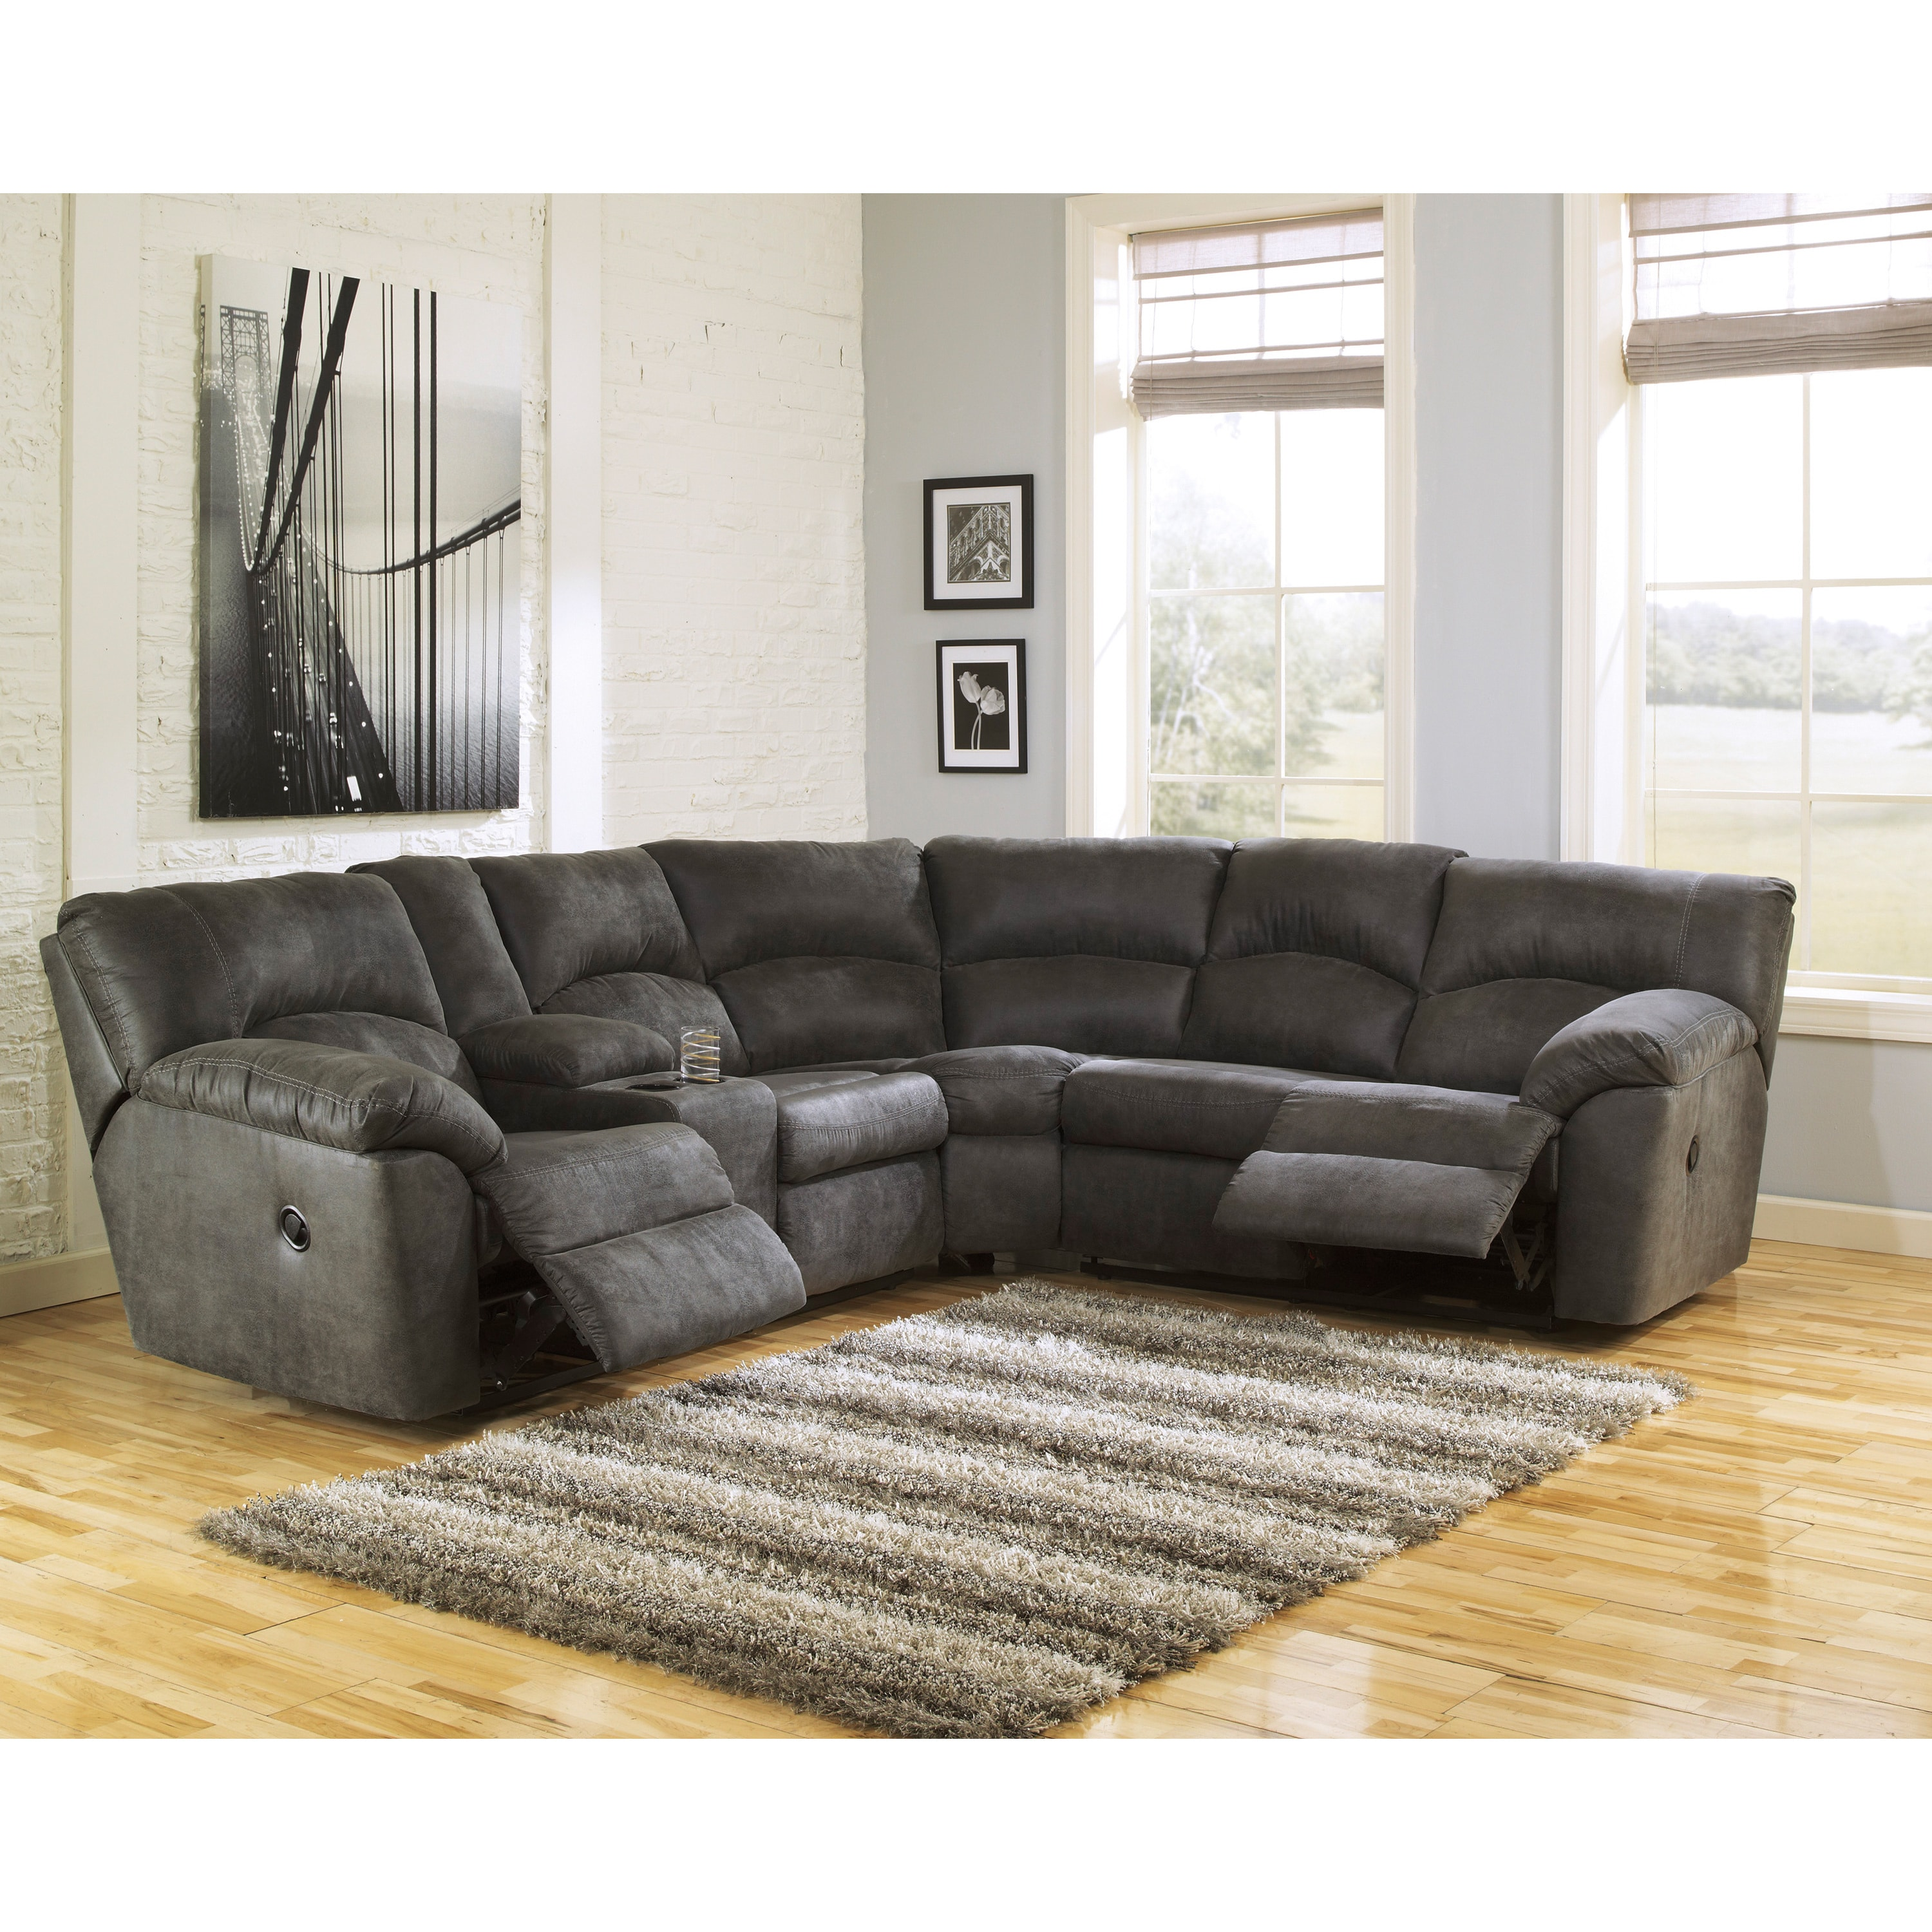 new reclining sectional sofa picture-Terrific Reclining Sectional sofa Picture